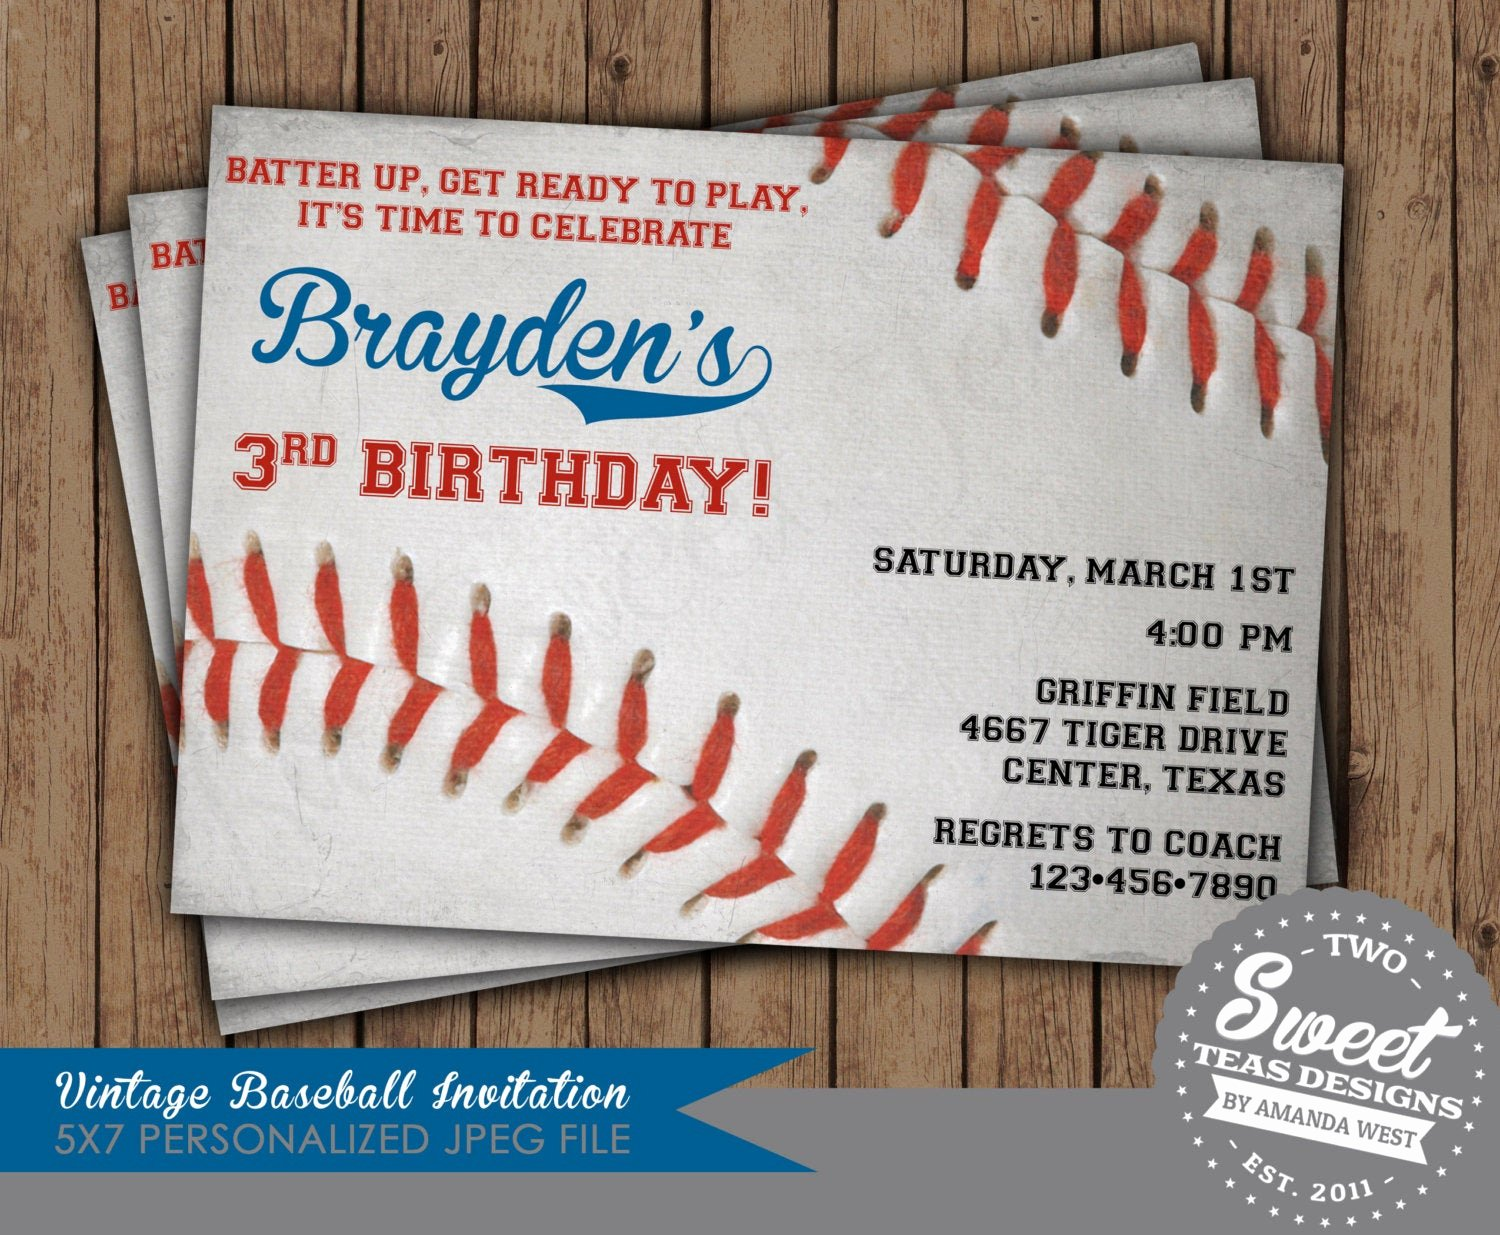 Free Printable Baseball Birthday Invitations Lovely Baseball Party Invitation Birthday Party Digital by 2sweetteas